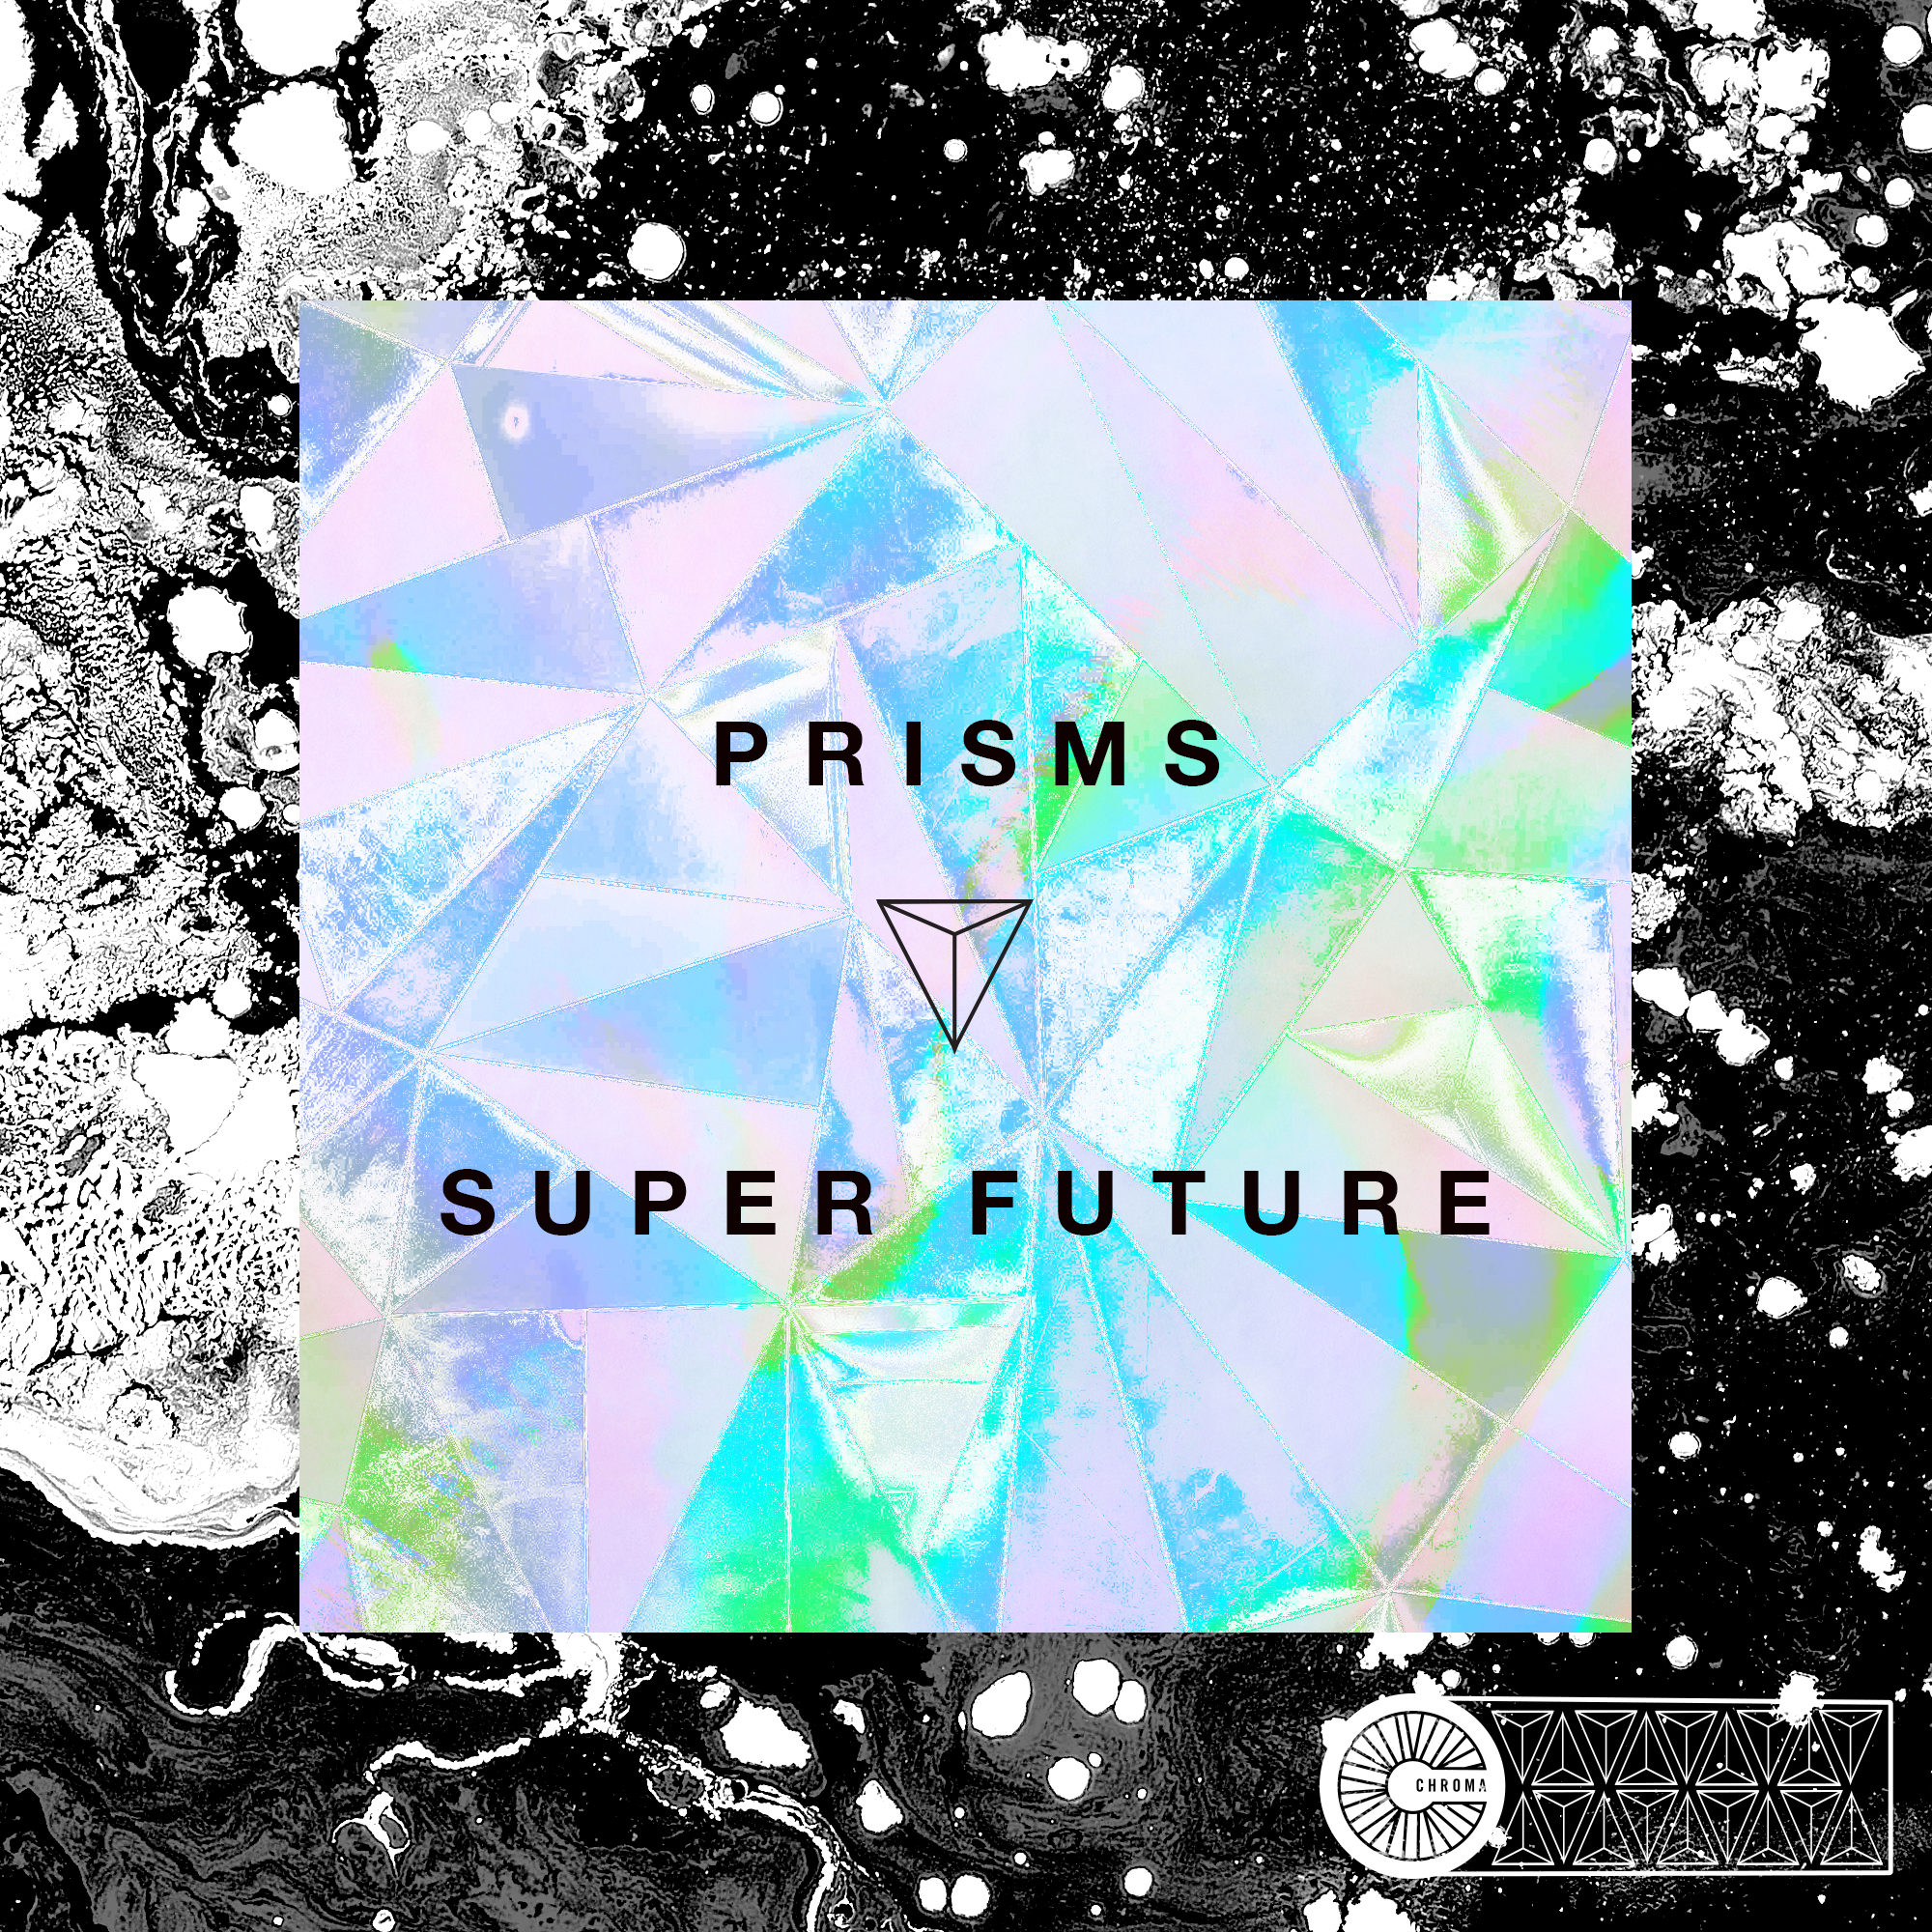 Super Future Prisms